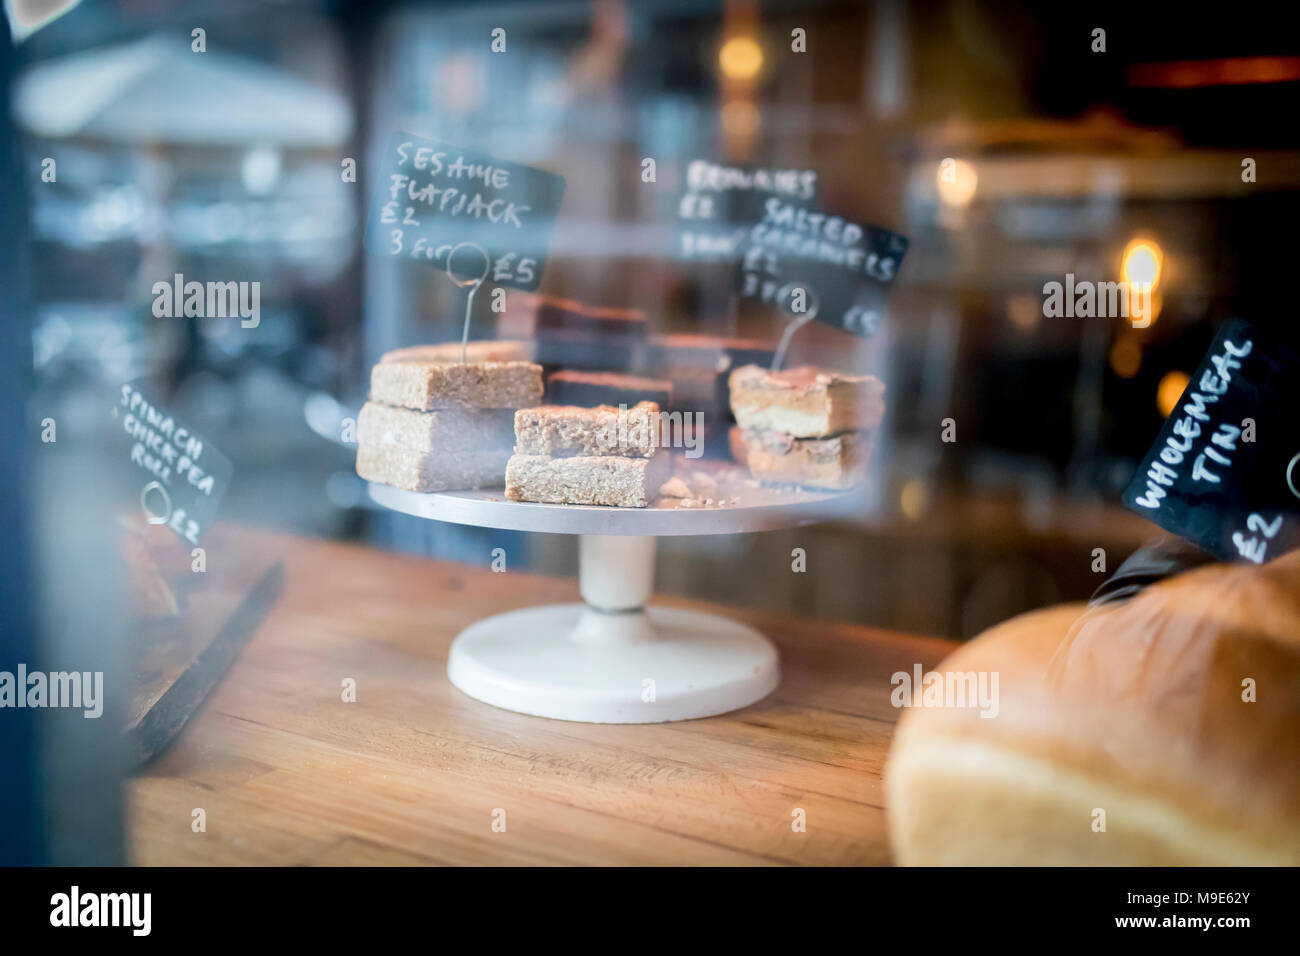 Flapjack and cake selection on a display on a cake stand in a bakery shop window in the UK - Stock Image